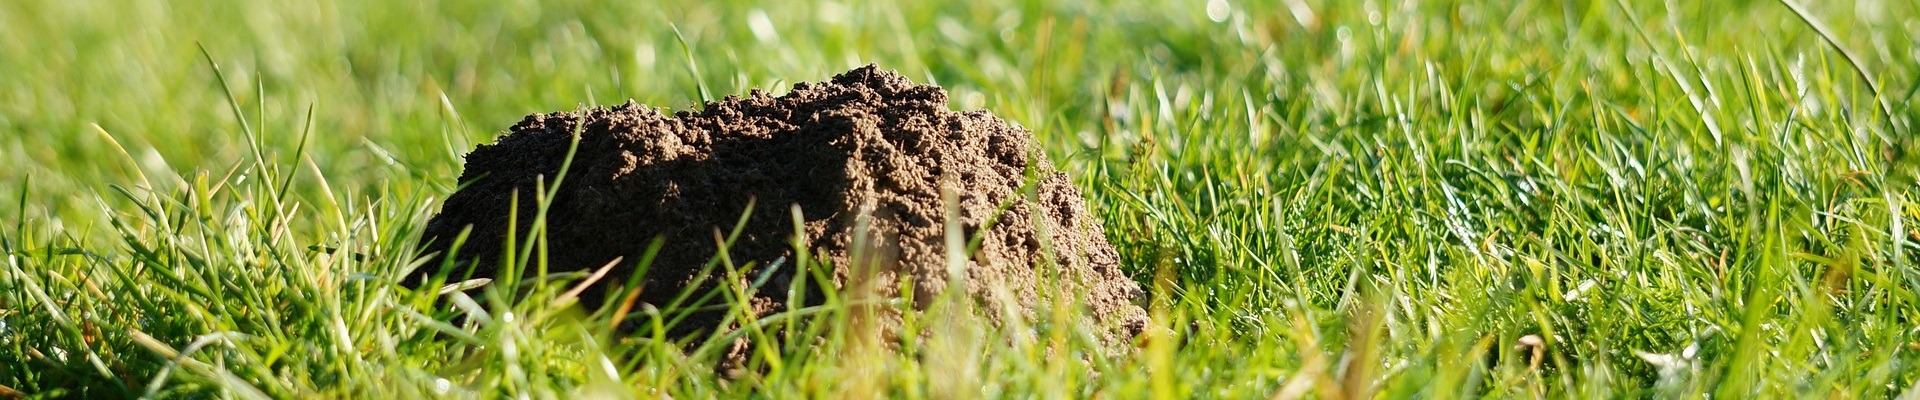 Things that can affect your lawn